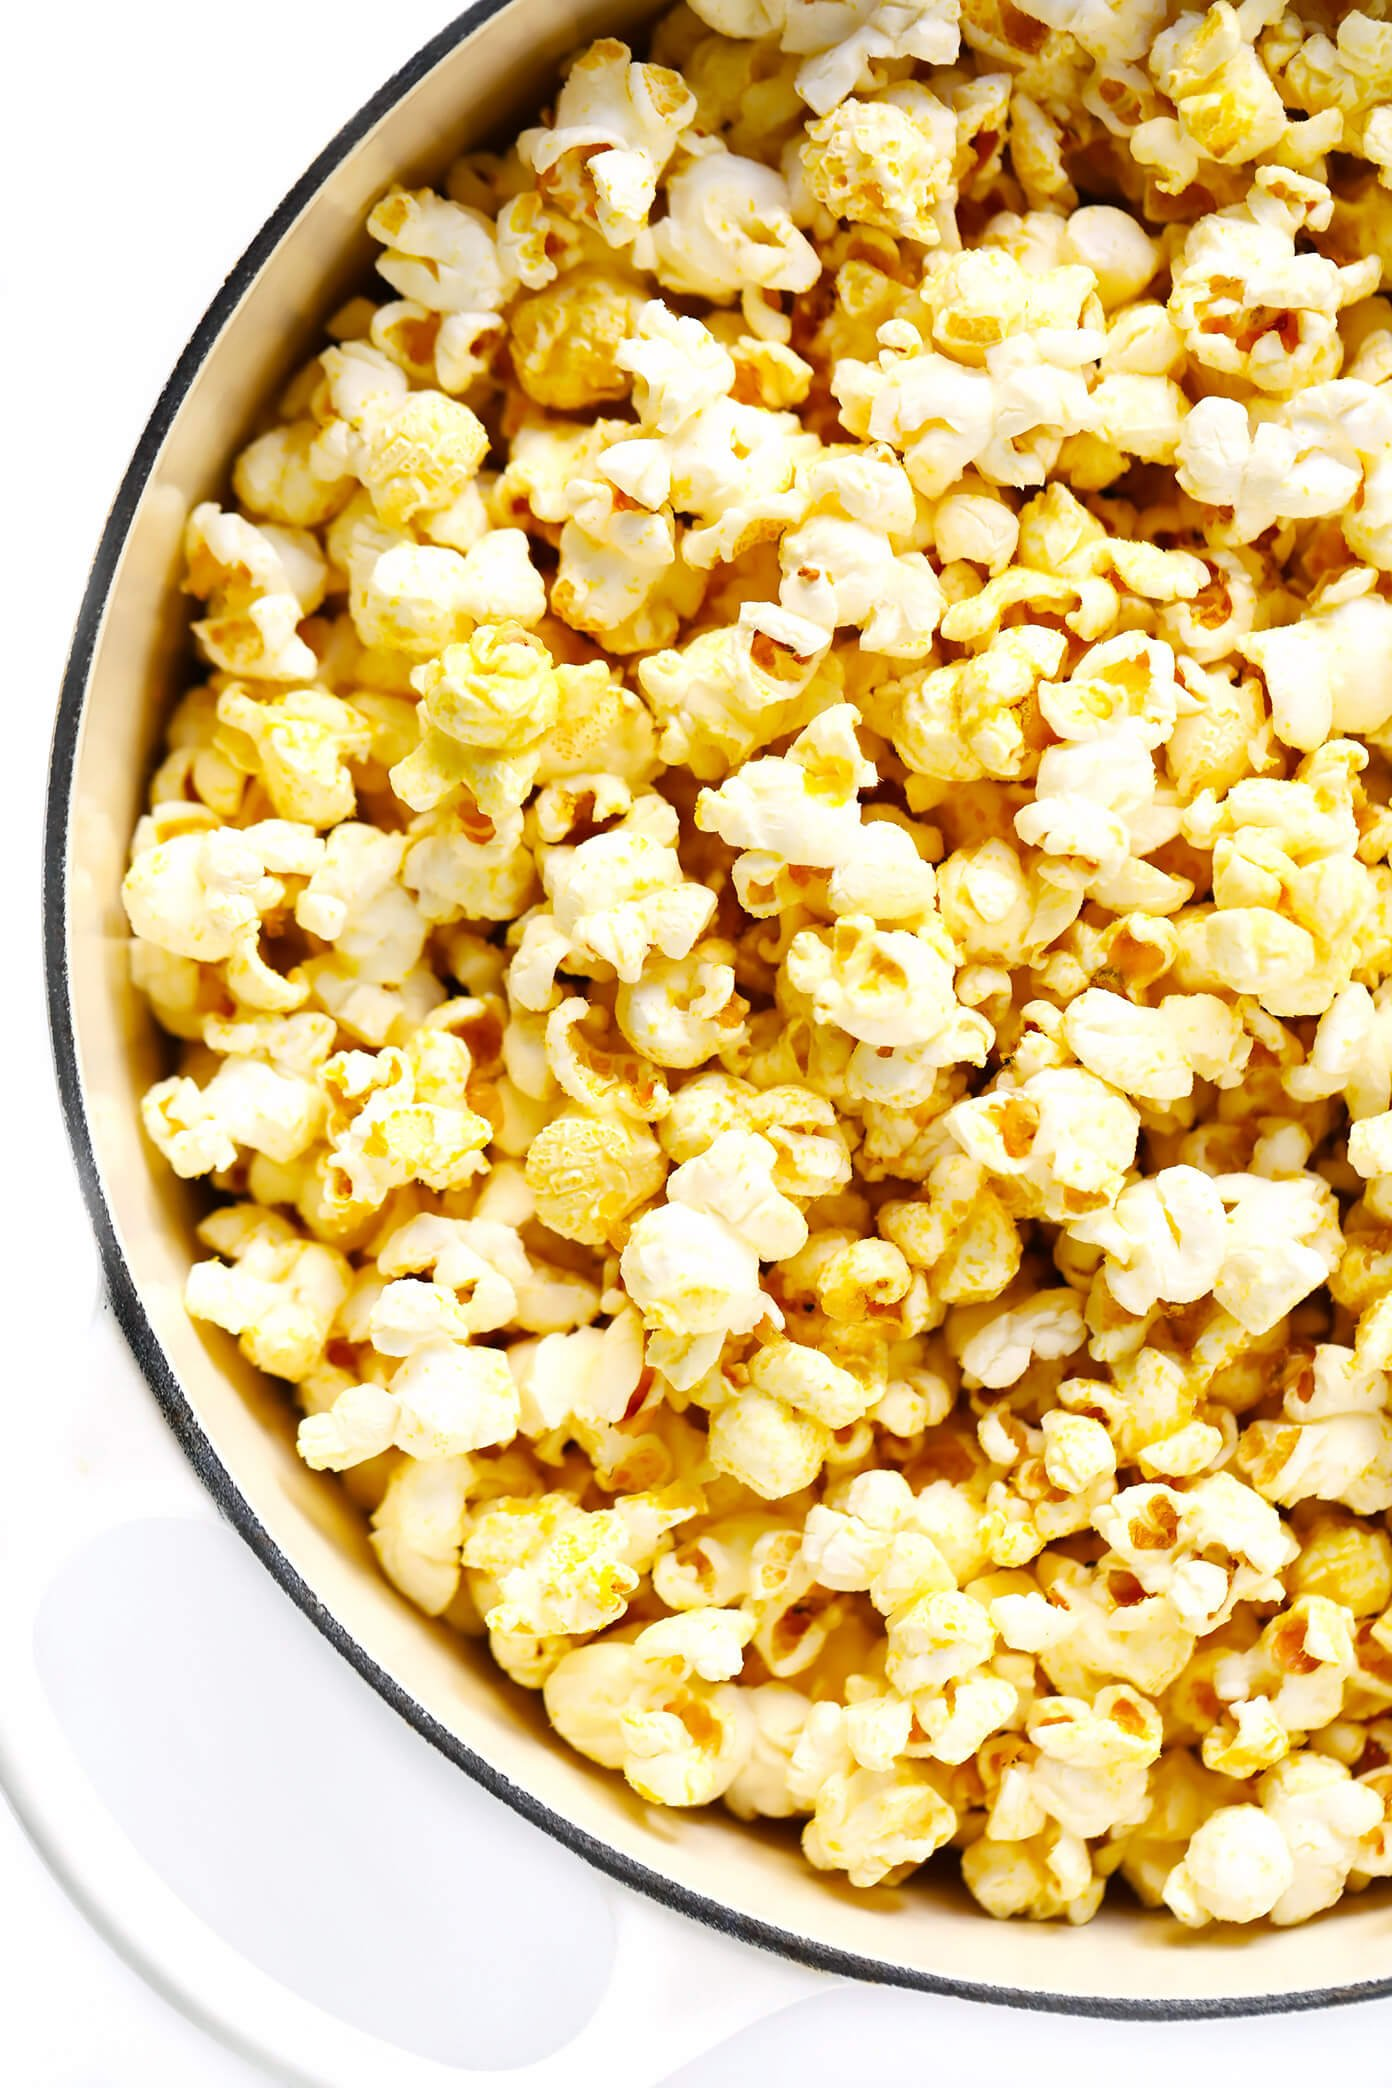 How To Make Nooch Popcorn (Vegan)